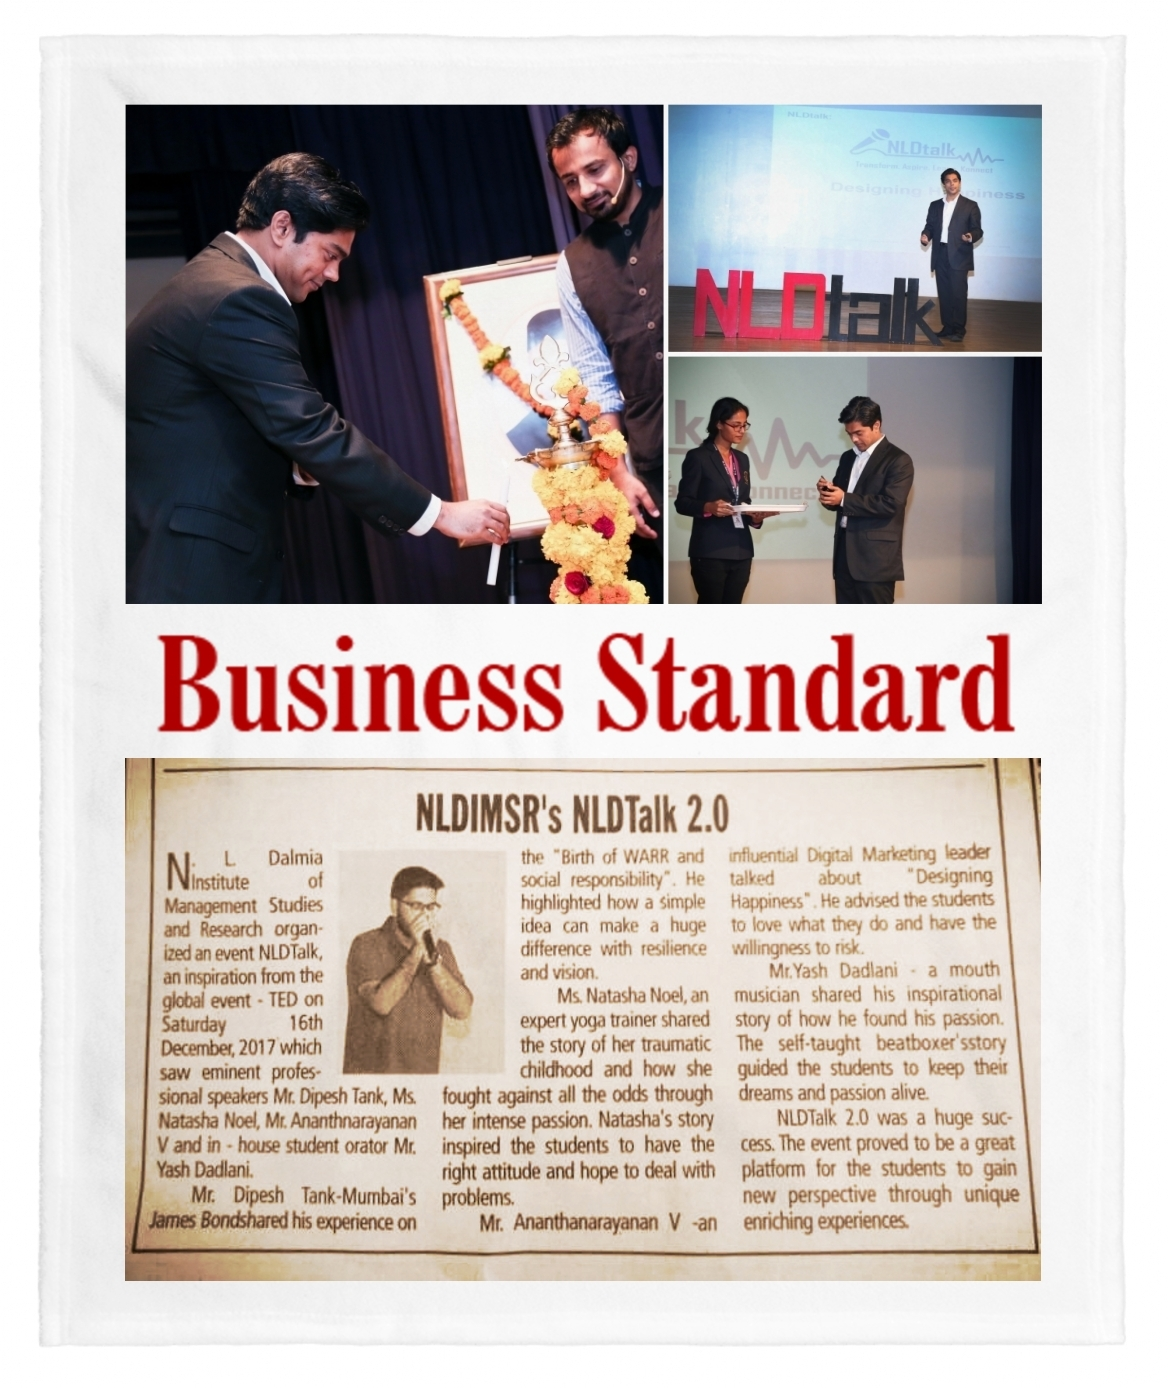 business standard Market news from one of the most comprehensive financial news networks in india, it provides daily insight of the stock market, industry news, business news, economy news, loans & credit card news, expert interviews and exclusive reports on companies, quick stock & derivative quotes, portfolios plus companies and economy data.